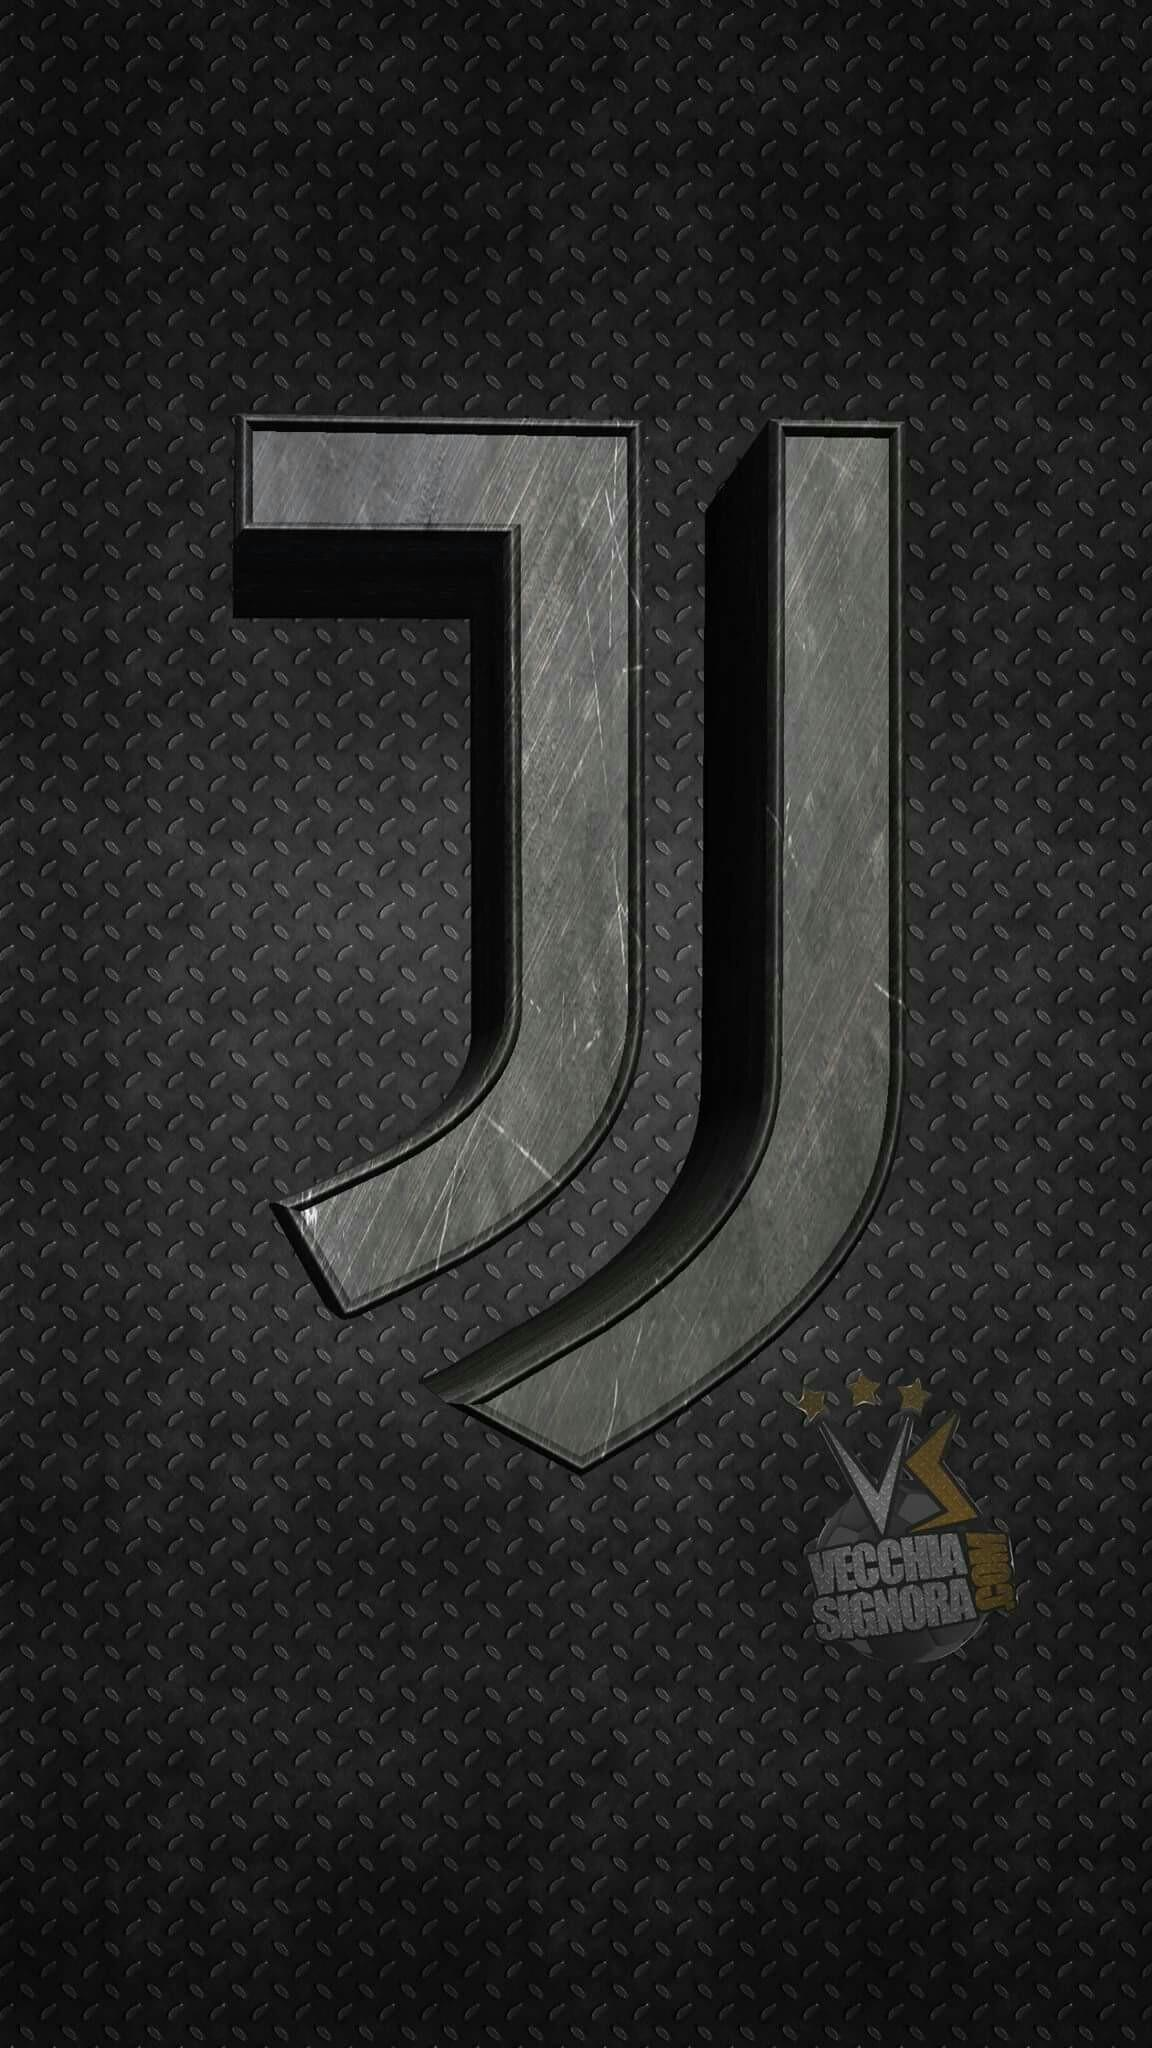 juventus wallpapers hd new 2020 for android apk download juventus wallpapers hd new 2020 for